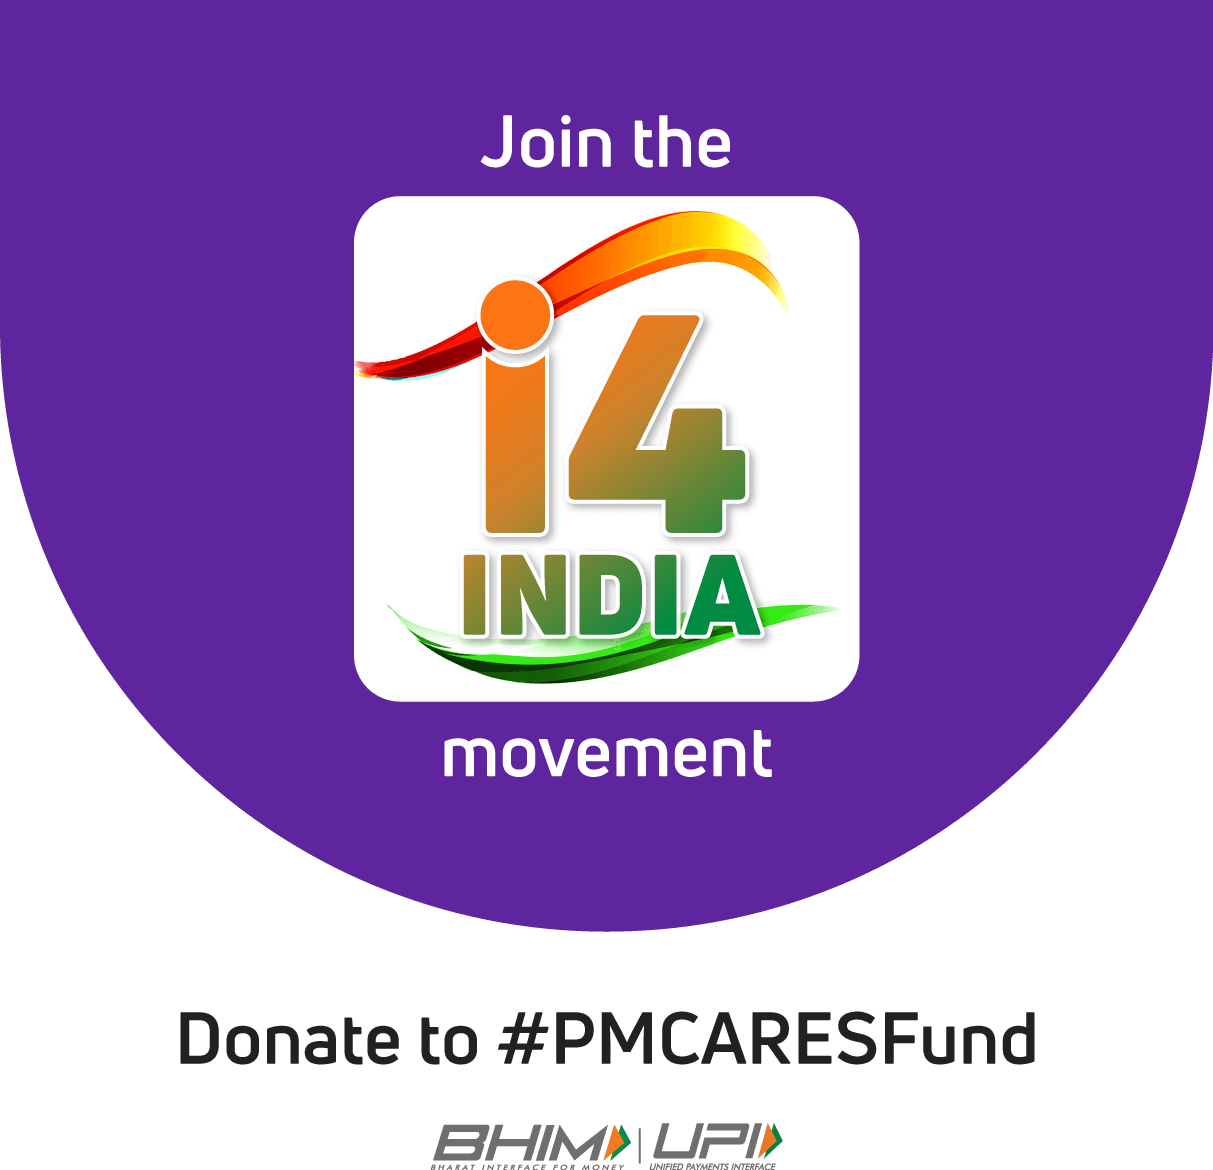 Join the PhonePe #i4India movement